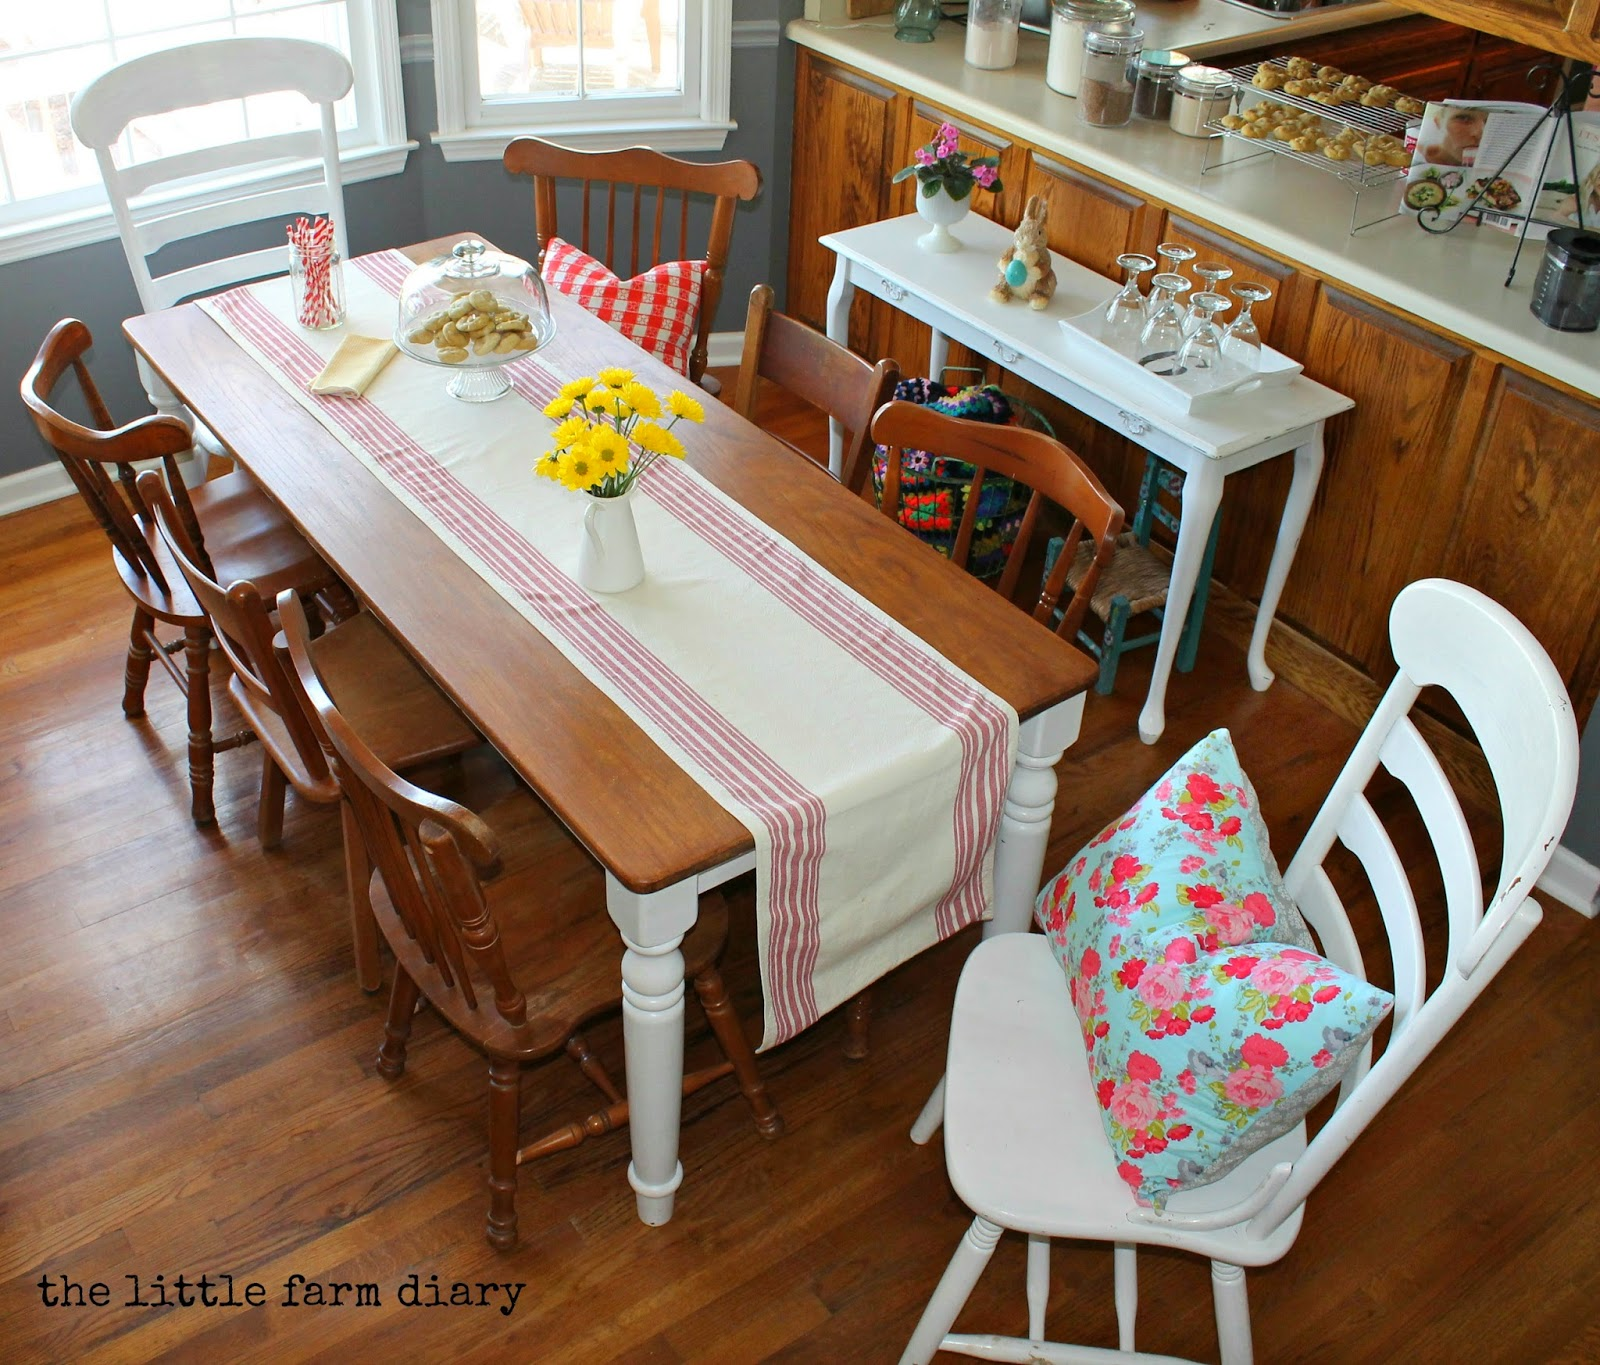 Creating a Beautiful Life on Less Home Tour with Amy on Blissful & Domestic